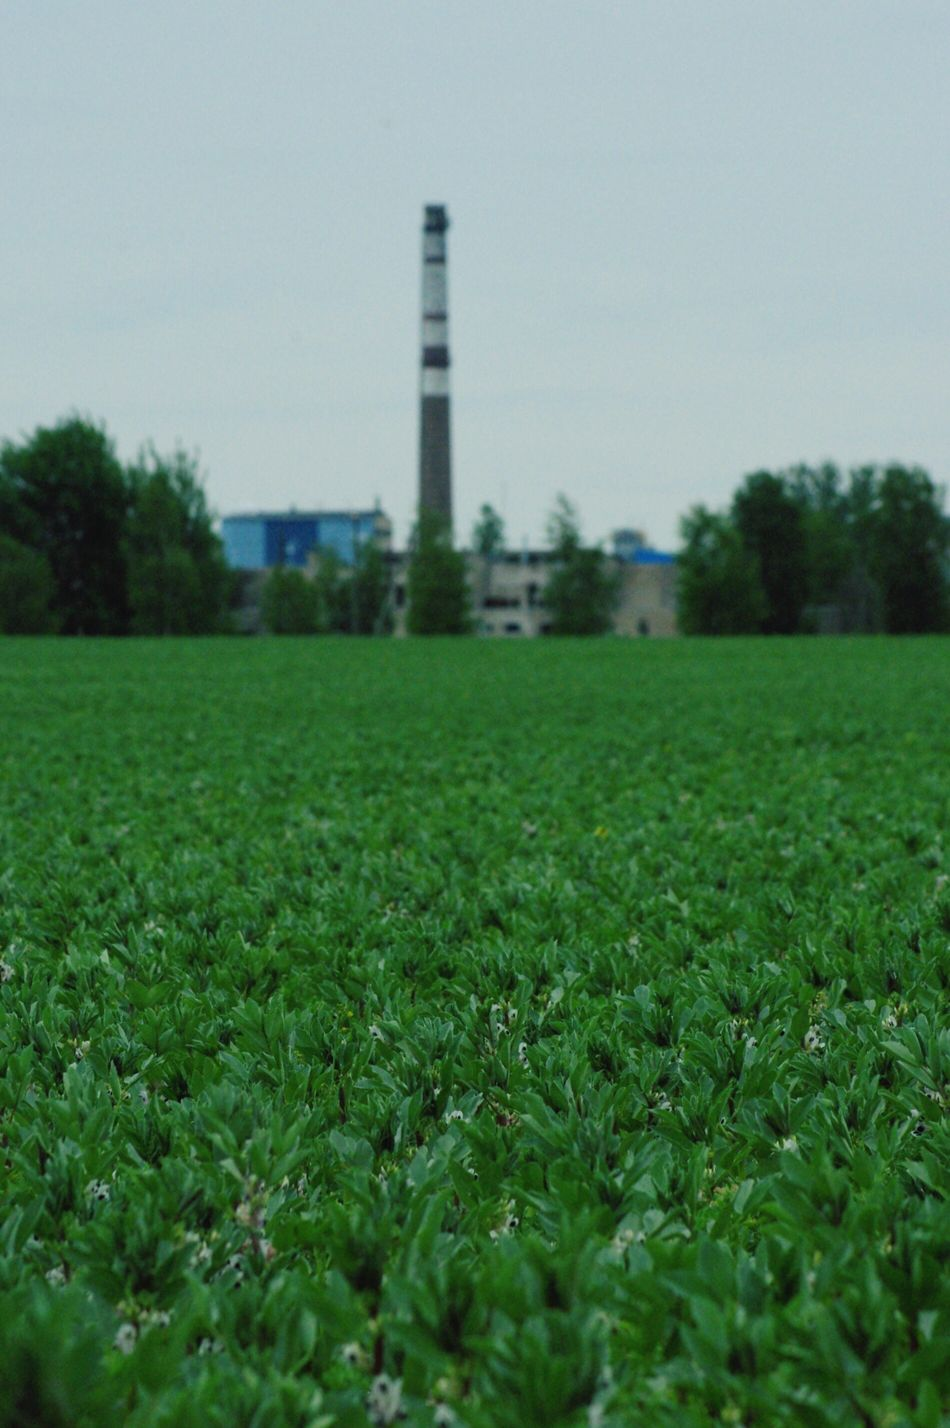 Summer Summertime Bean Blossoming  Agriculture Agricultural Land Factory Paperfactory